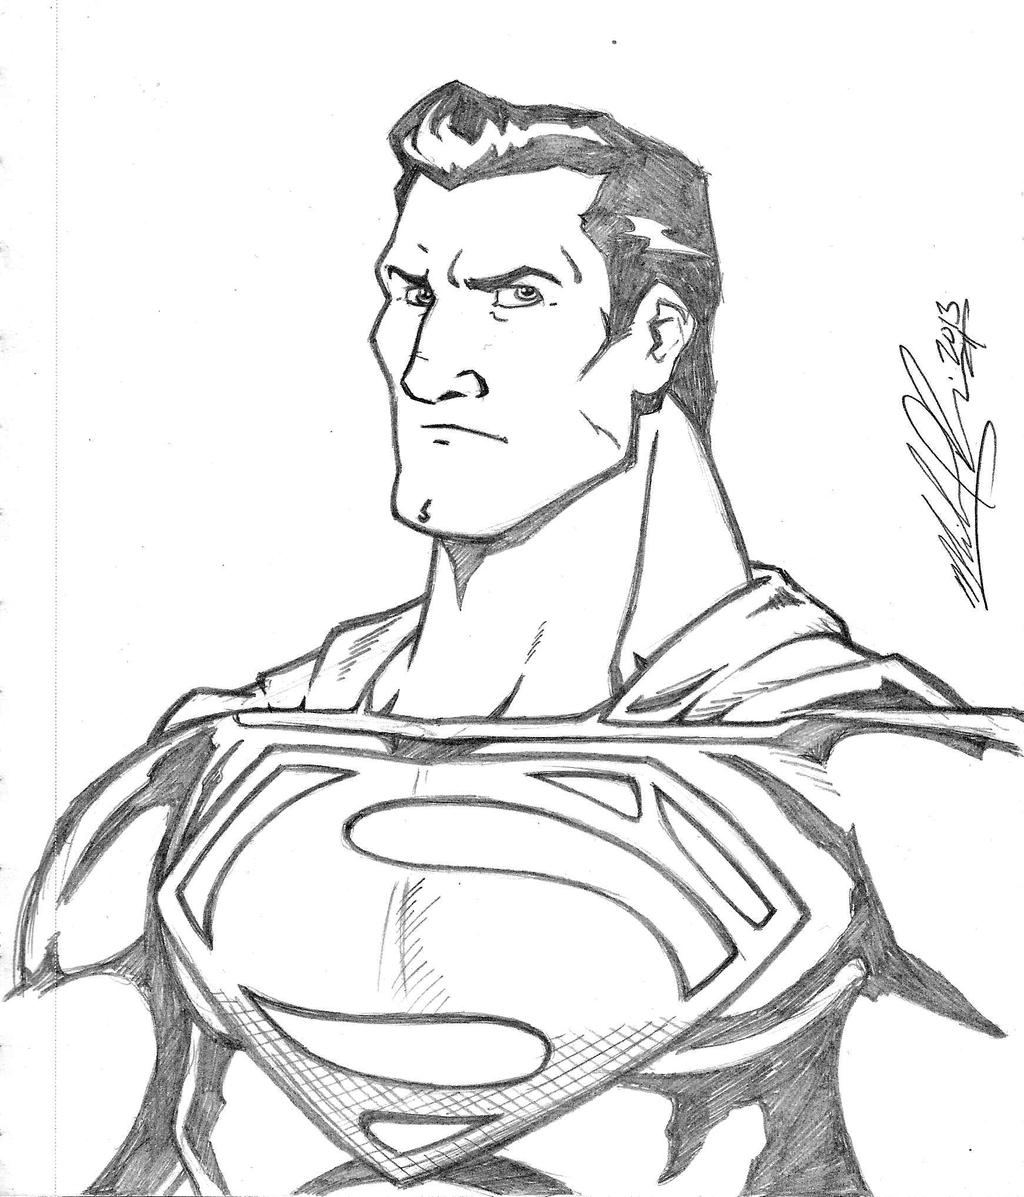 Pencil Drawing Images Cartoons: Man Of Steel Pencil Sketch By Mikereisner On DeviantArt